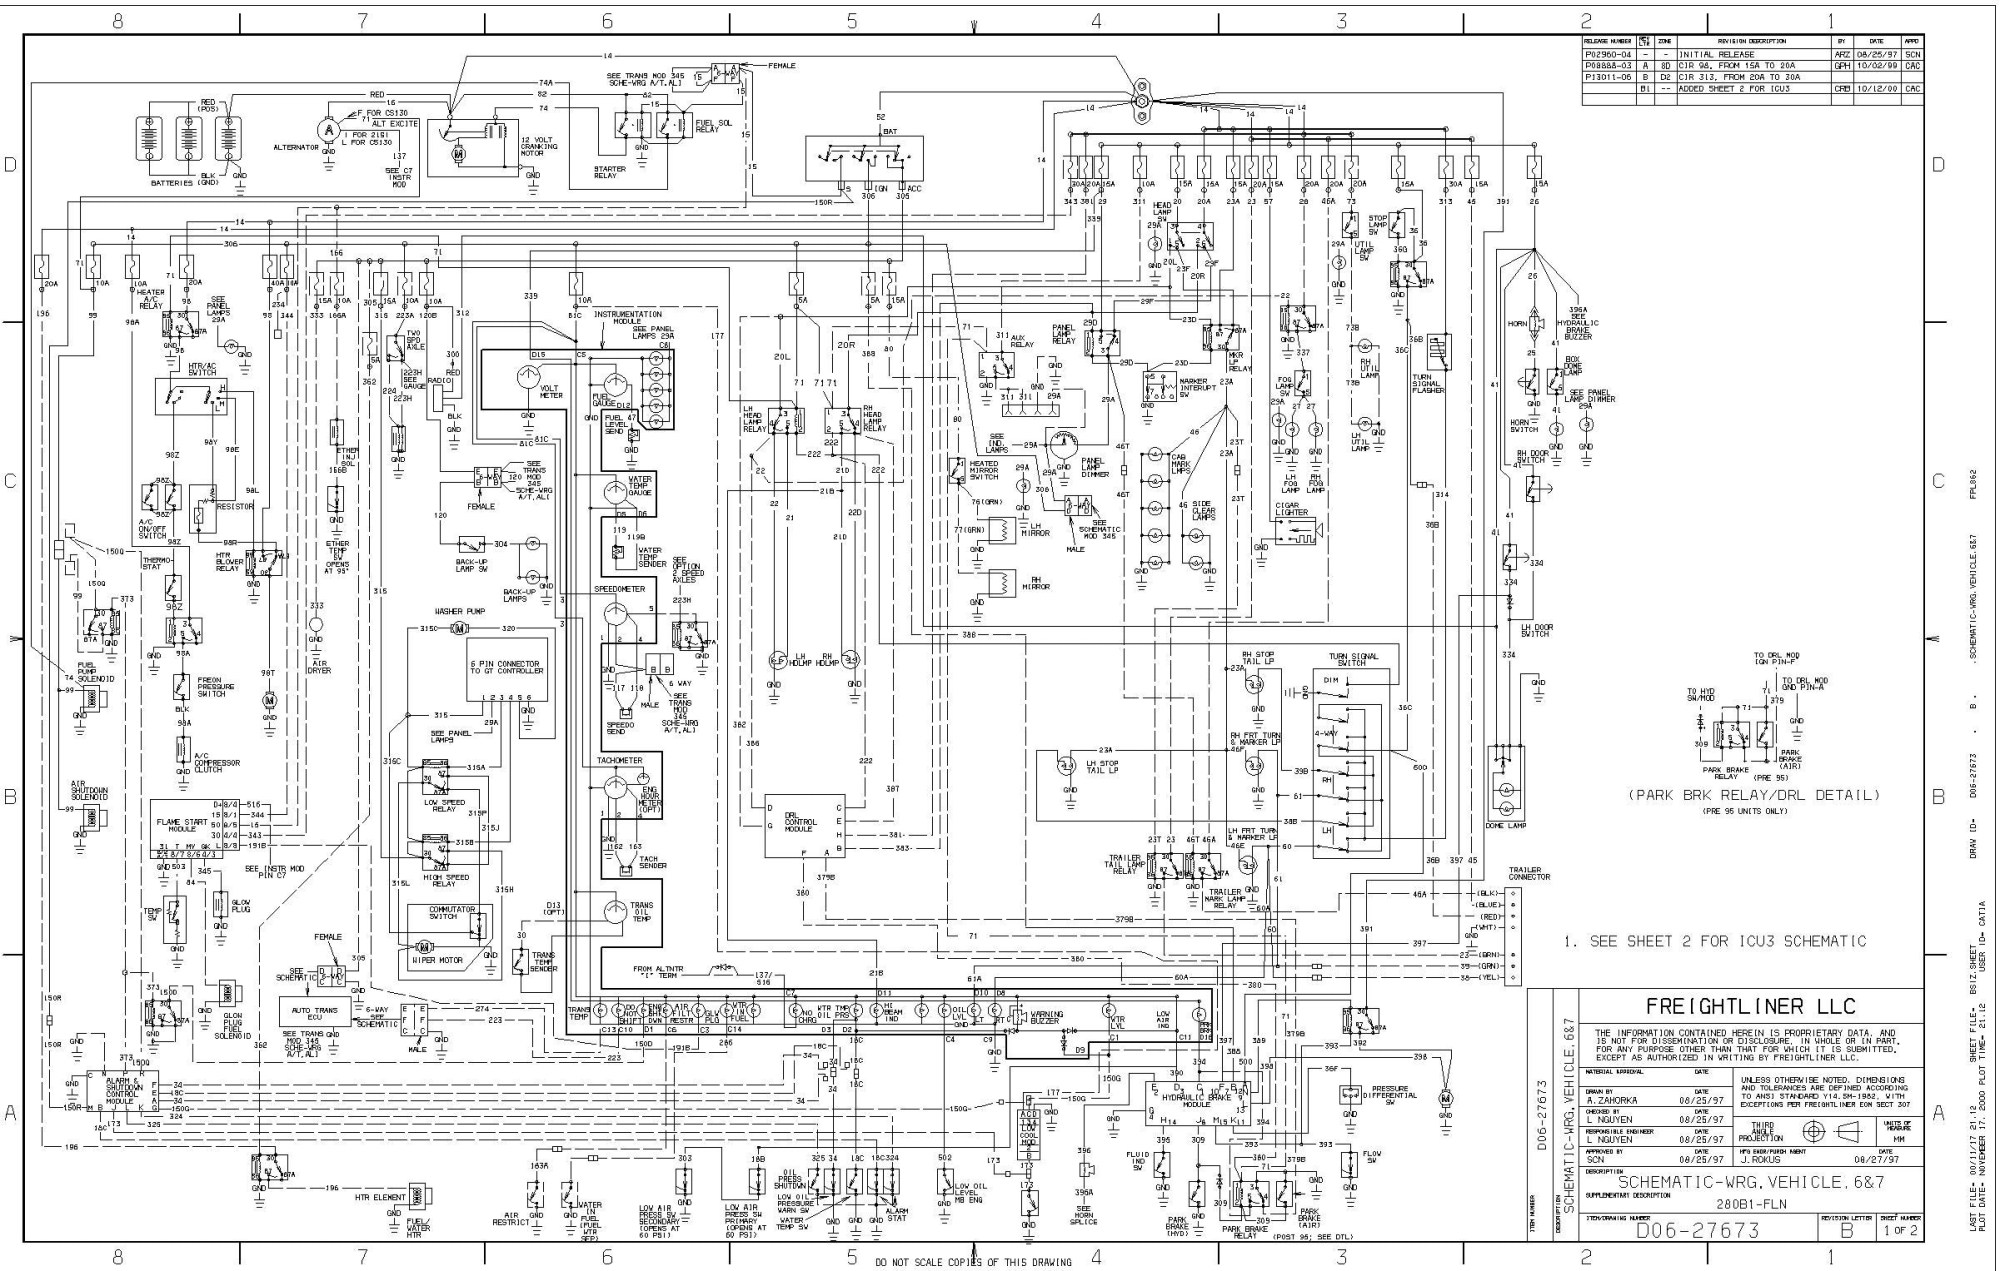 hight resolution of freightliner m2 wiring diagram access freightliner wiring diagrams gallery diagram also 17j